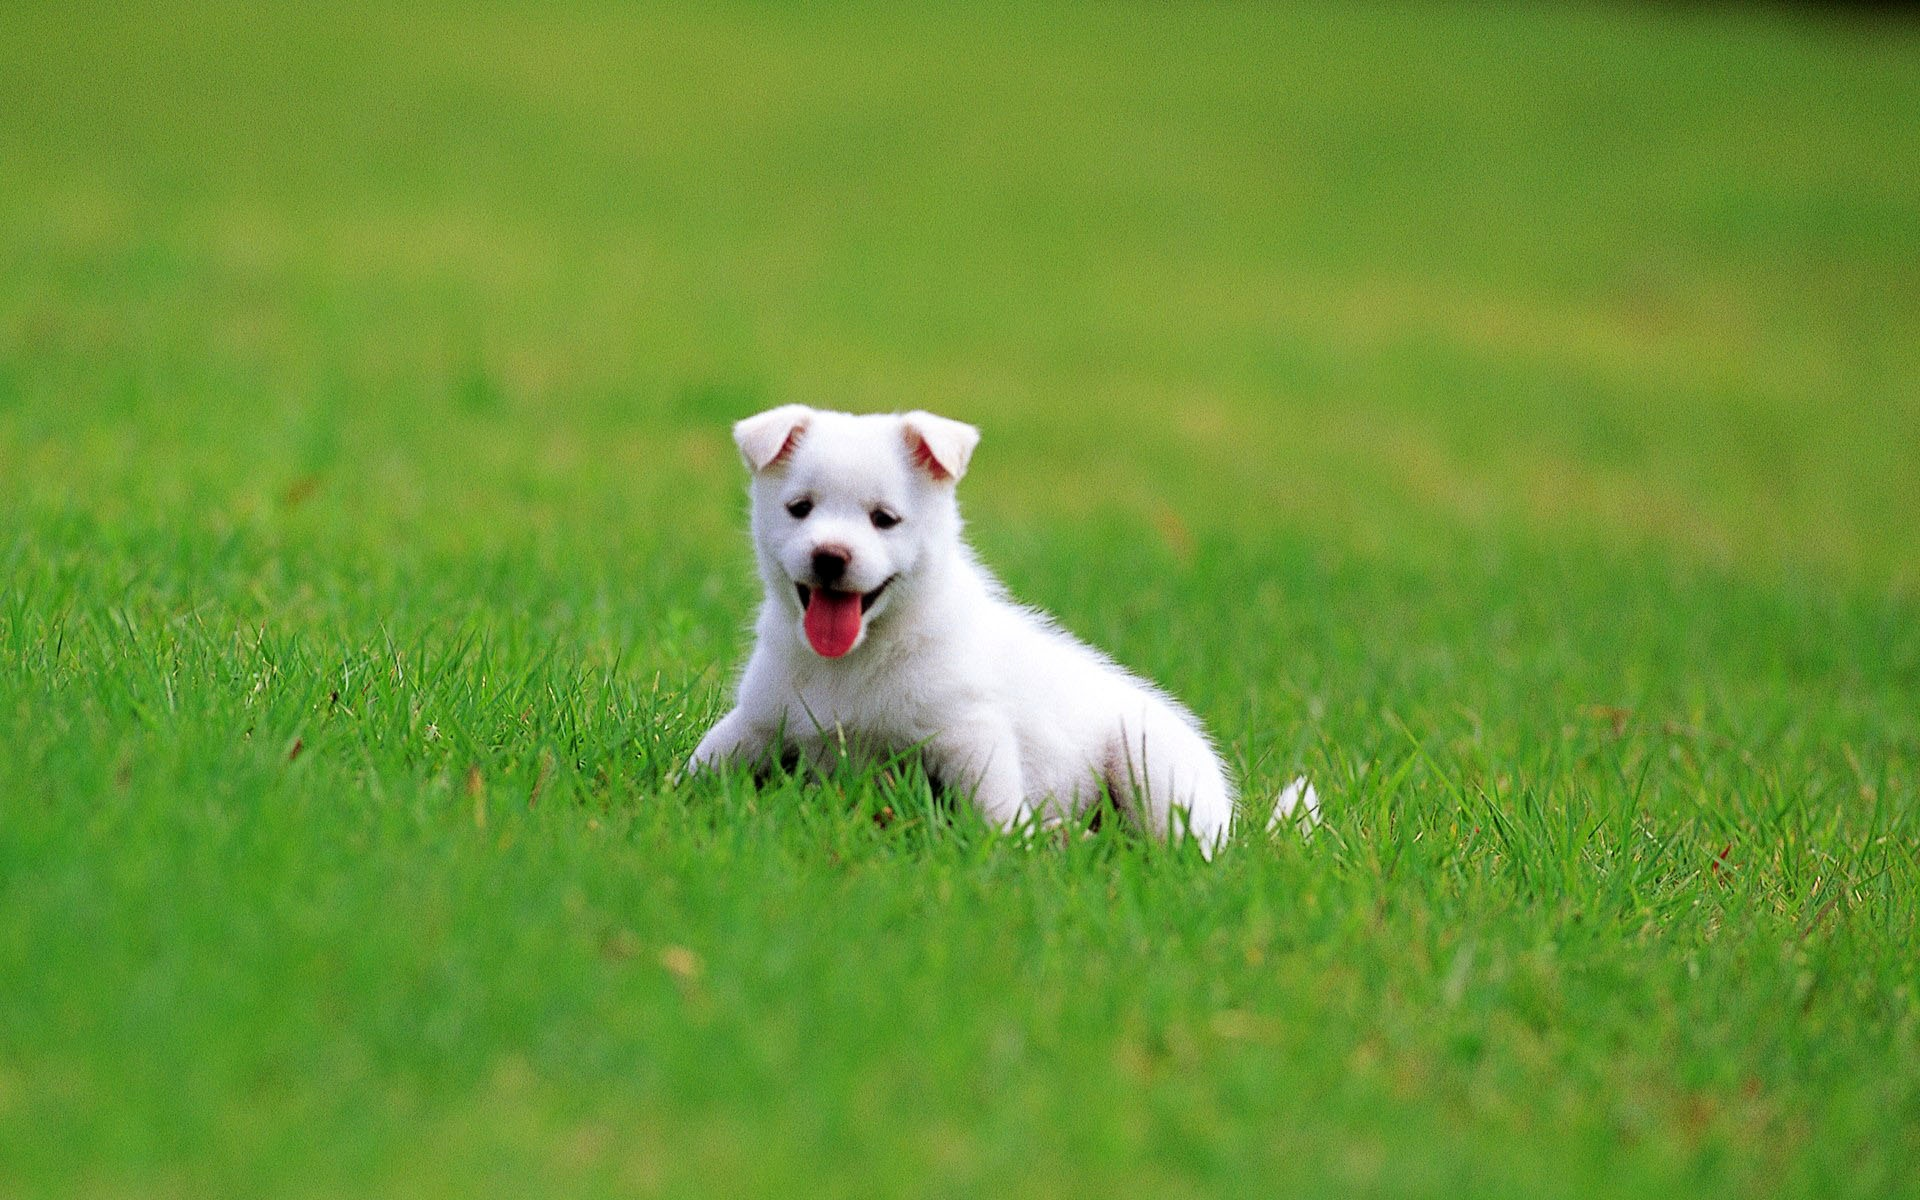 Puppy Backgrounds Wallpaper High Definition High Quality Widescreen